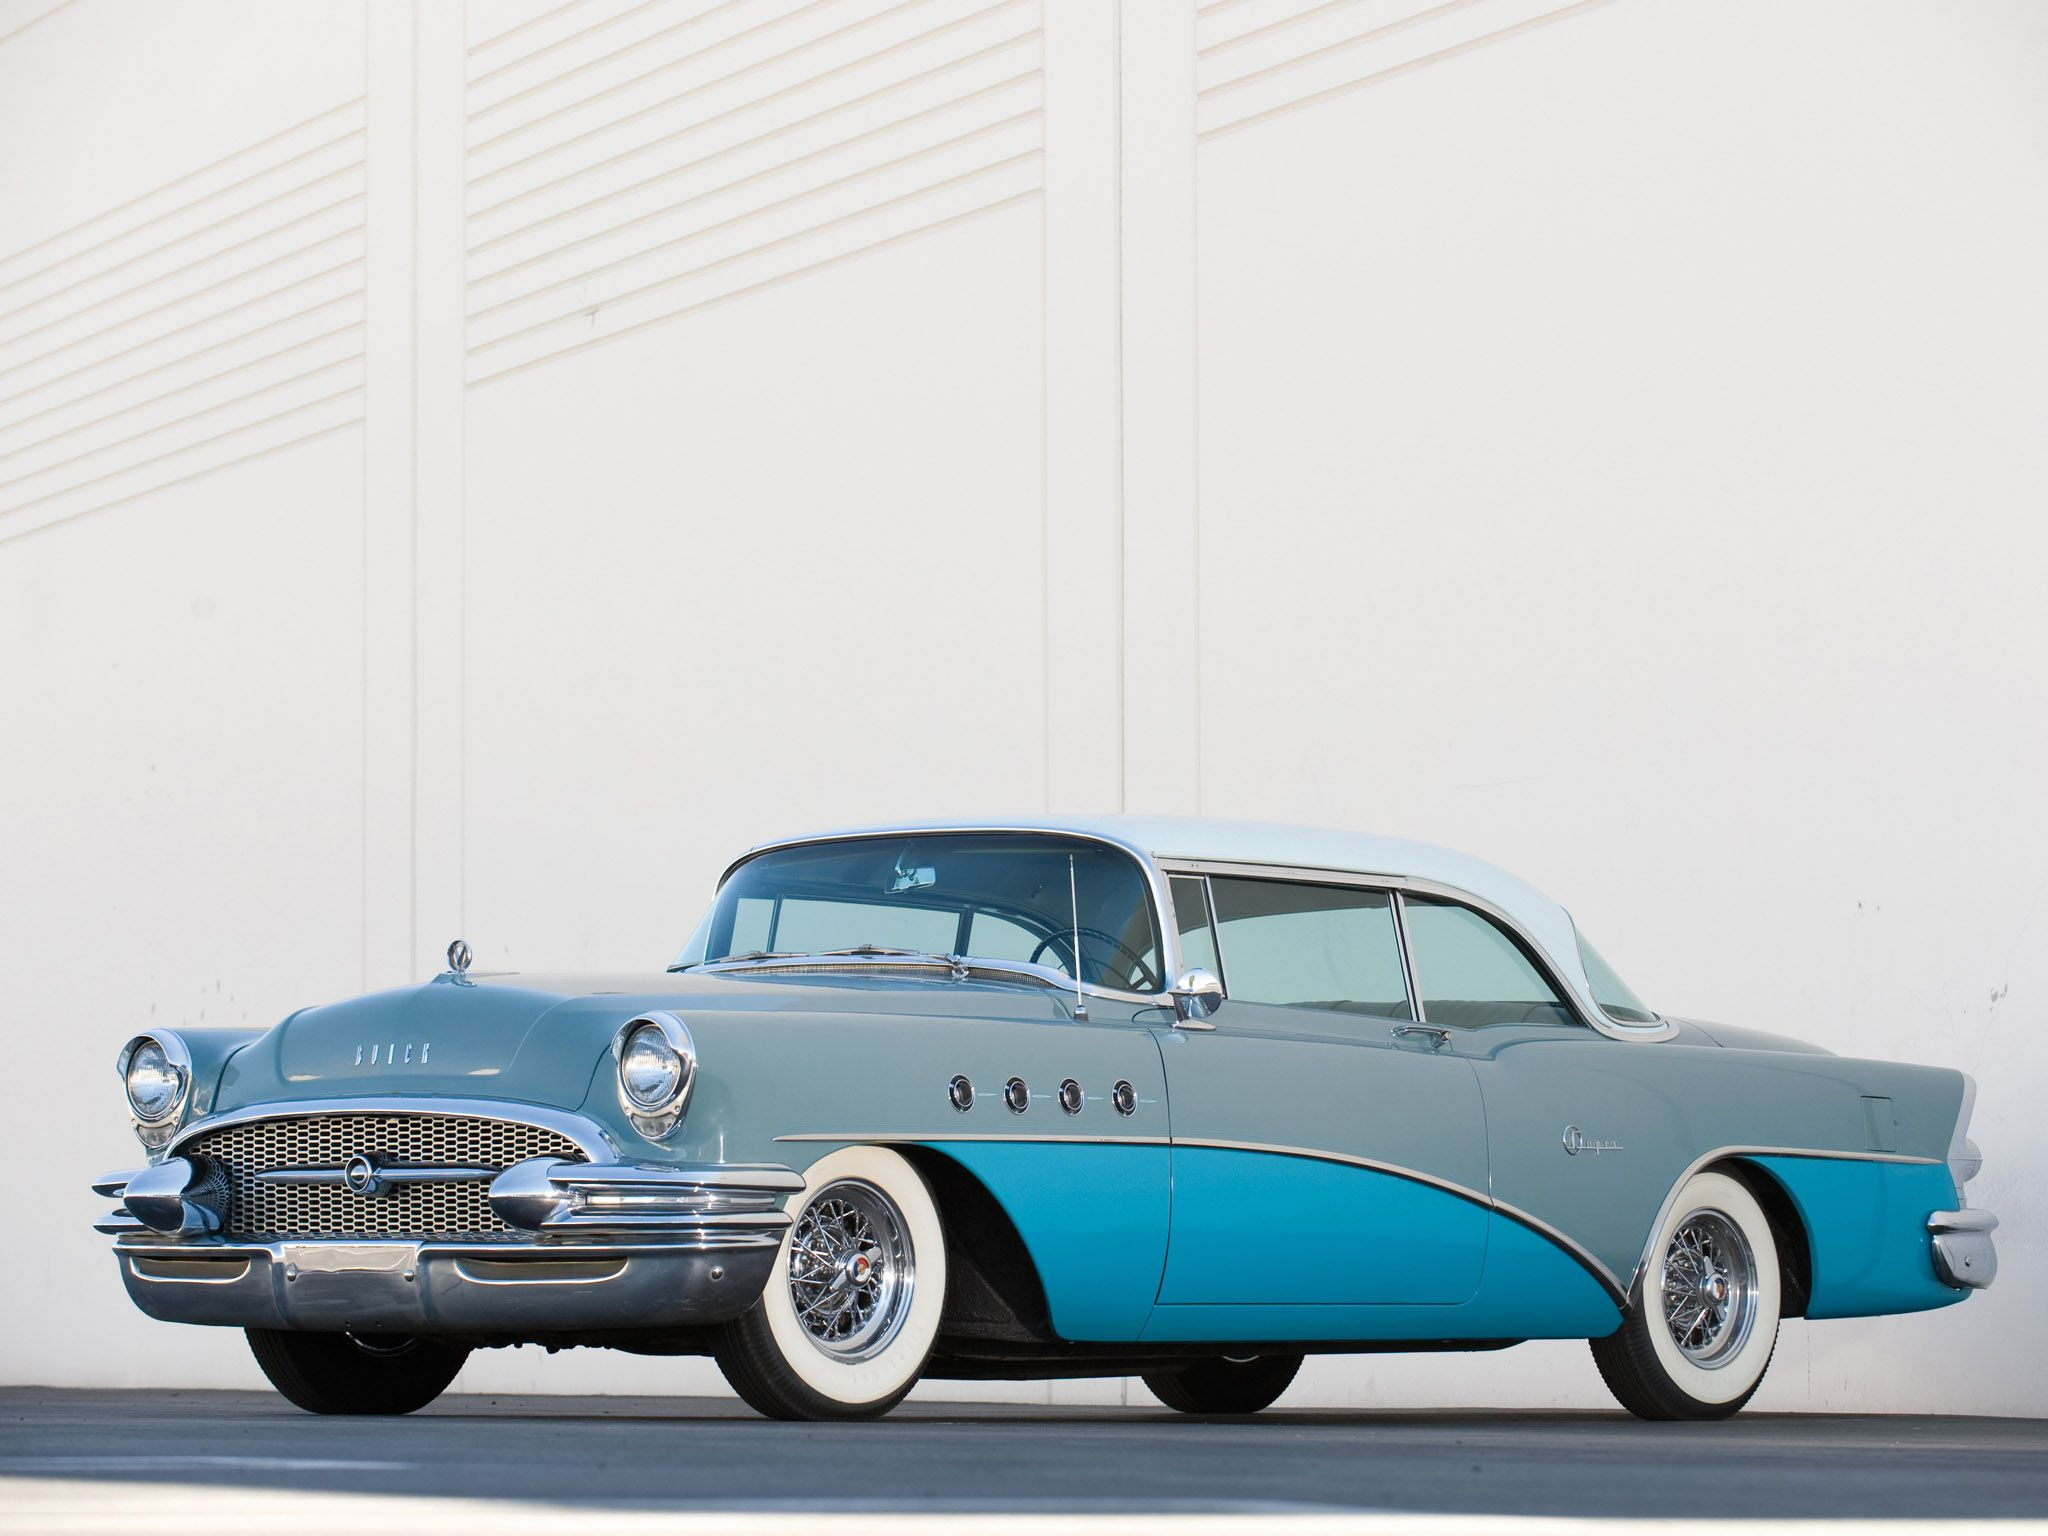 buick lesabre boiq old models buicks for ideas cars photo classic exelent sale info gift modern